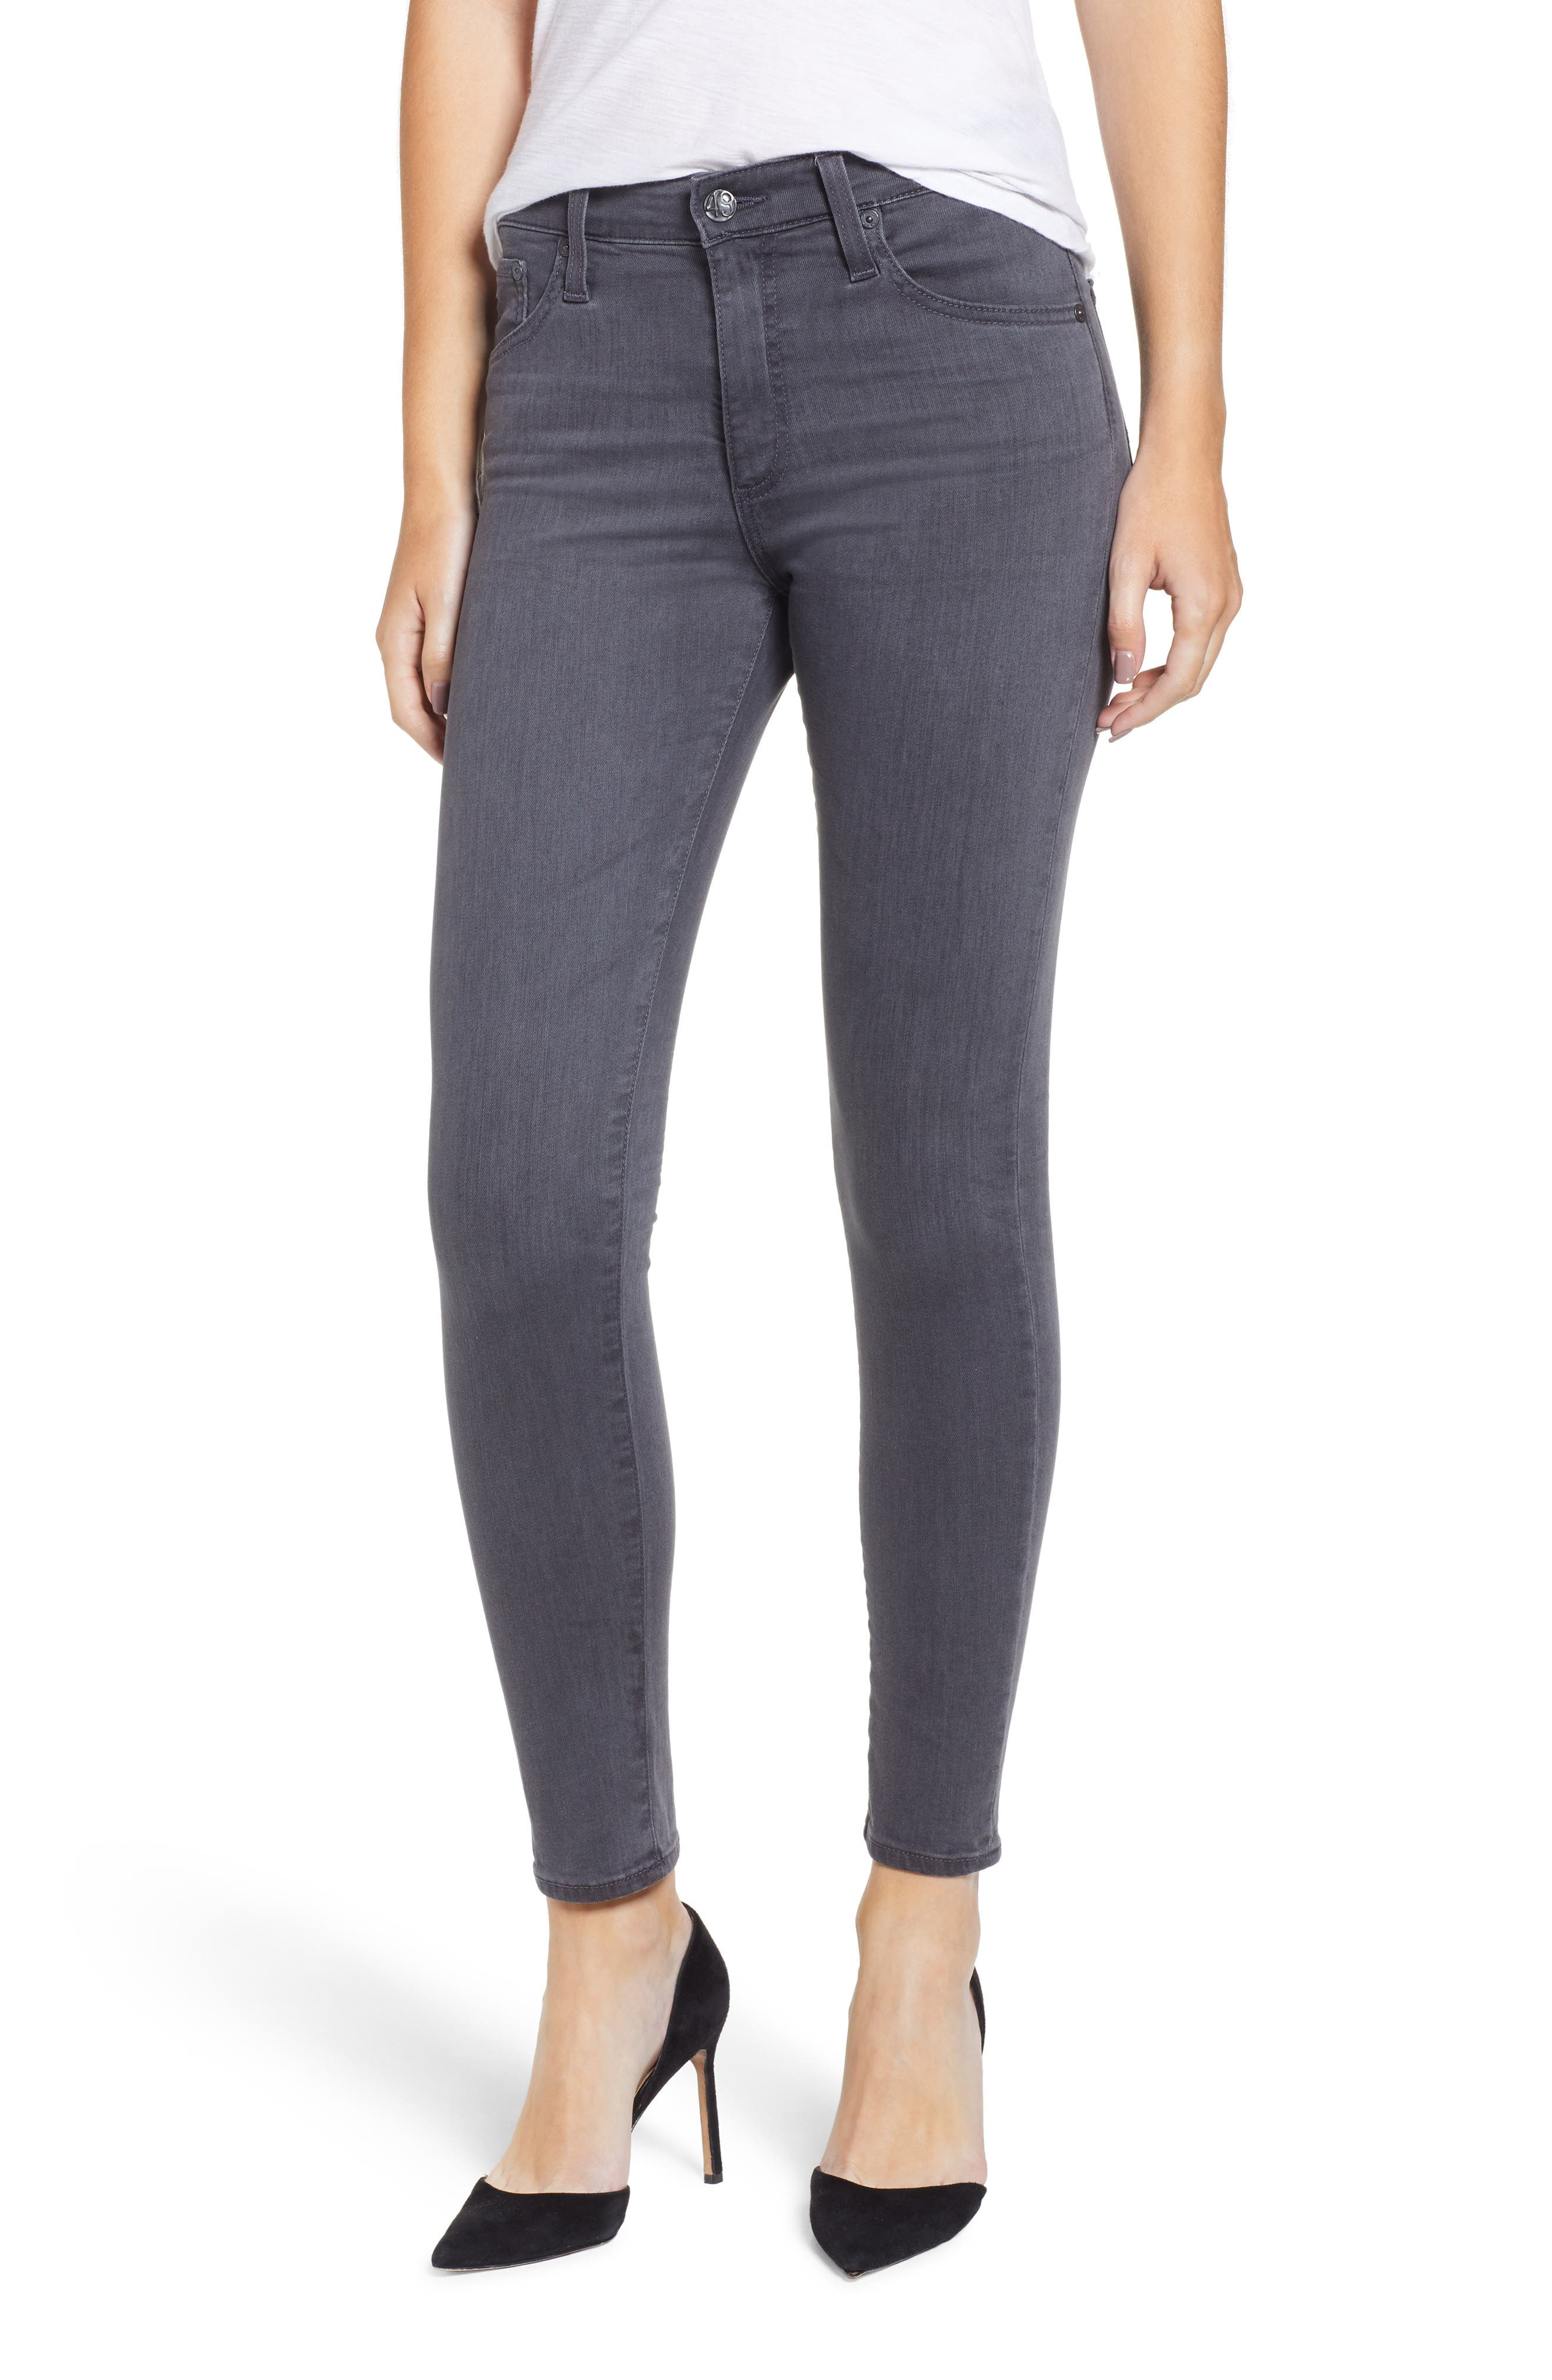 The Farrah High Waist Ankle Skinny Faux Leather Pants,                         Main,                         color, 5YRS AFFLICTION